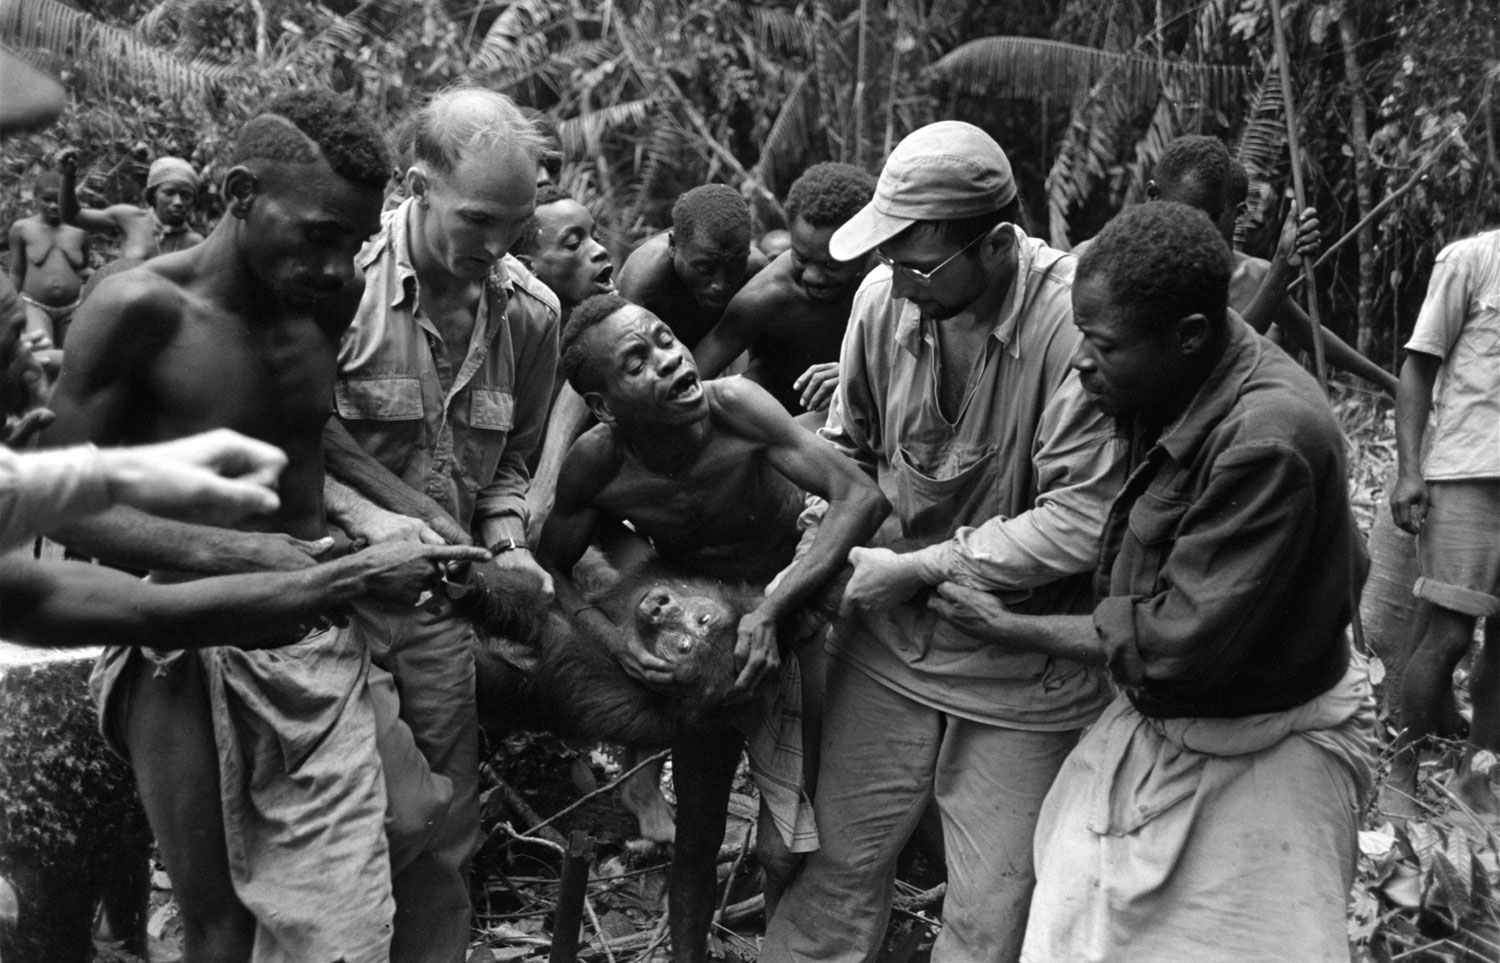 Caption from LIFE.  Subduing gorilla, a half-grown female weighing 70 pounds, requires the strength of Bill Said (white man at left), his assistant, John Biname (right), and several natives. Trick in capturing small gorillas is to get them by throat or by one arm and back of head in order to pin them down and keep them from biting.